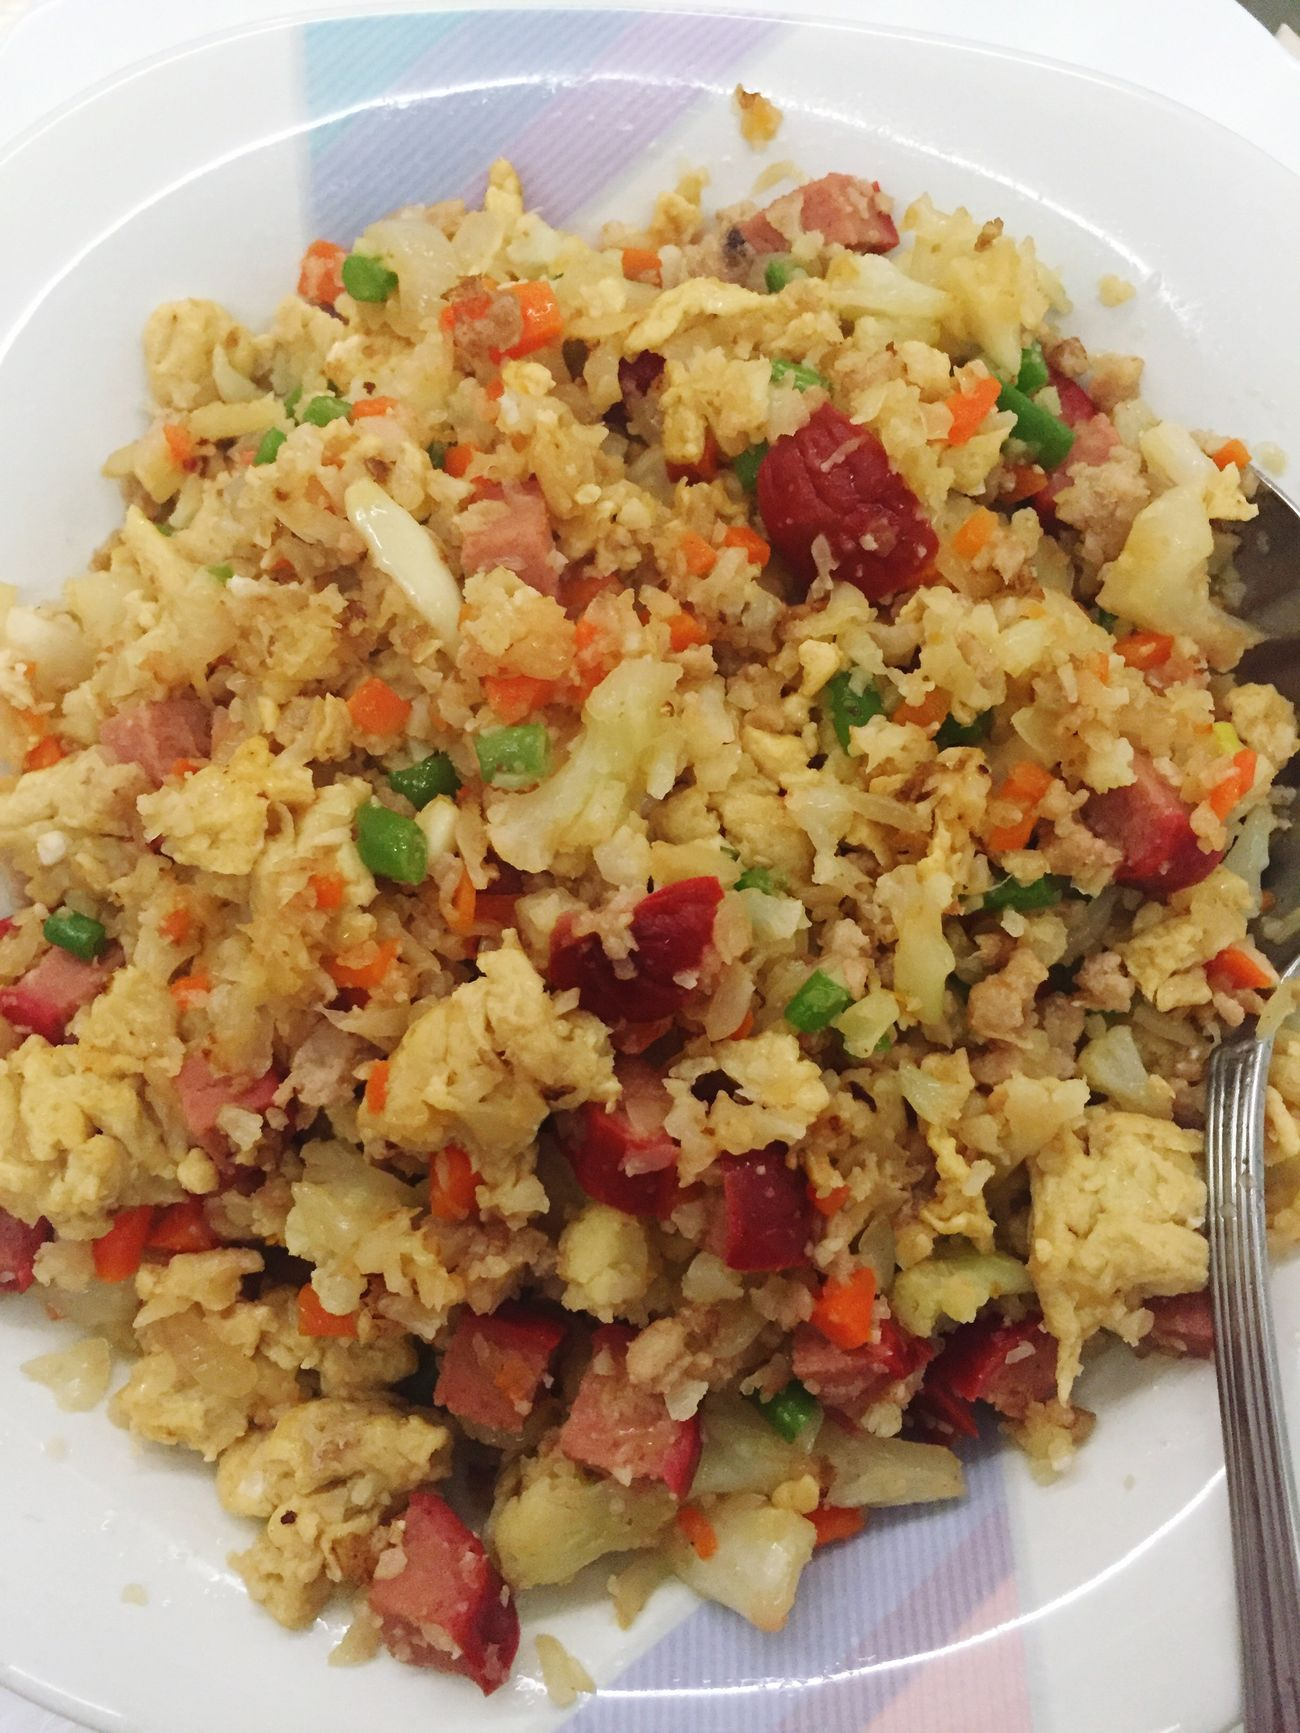 Fried rice with a twist. Broccolifriedrice